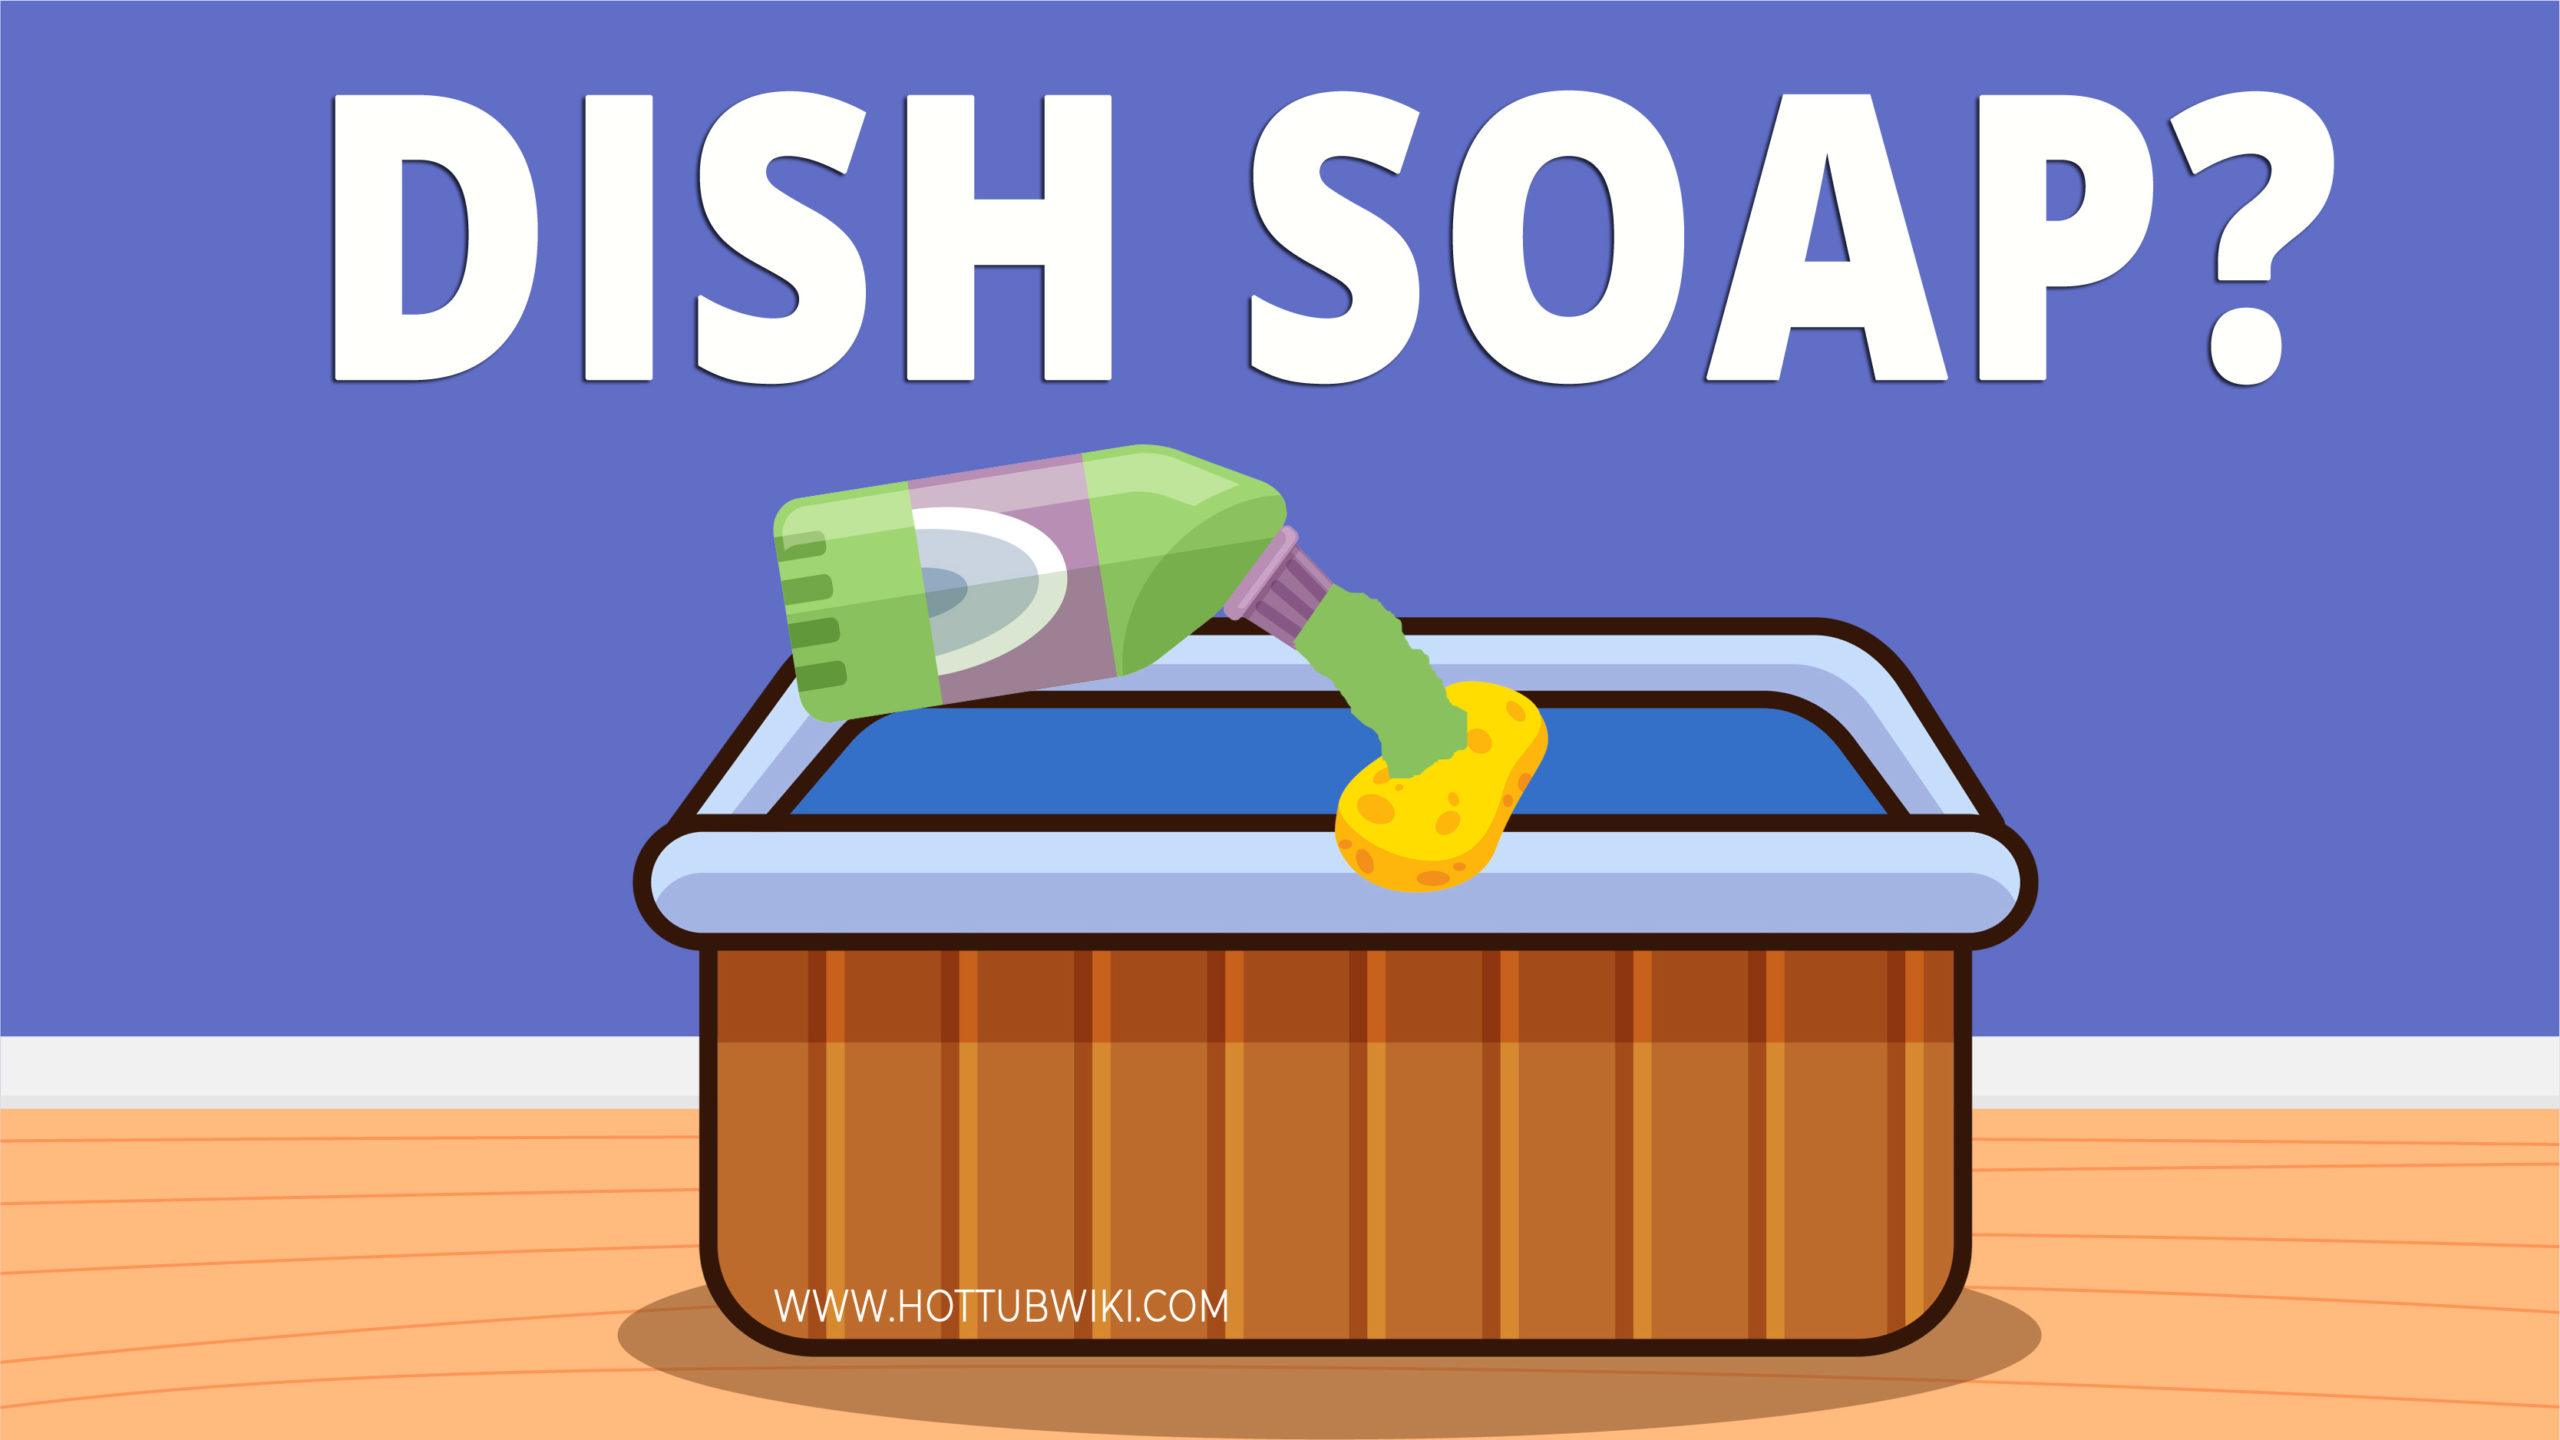 You can use dish soap to clean most things. But, can you use dish soap to clean a hot tub? You can, but it isn't recommended. Some products will do a better job than dish soap when it comes to cleaning a hot tub.